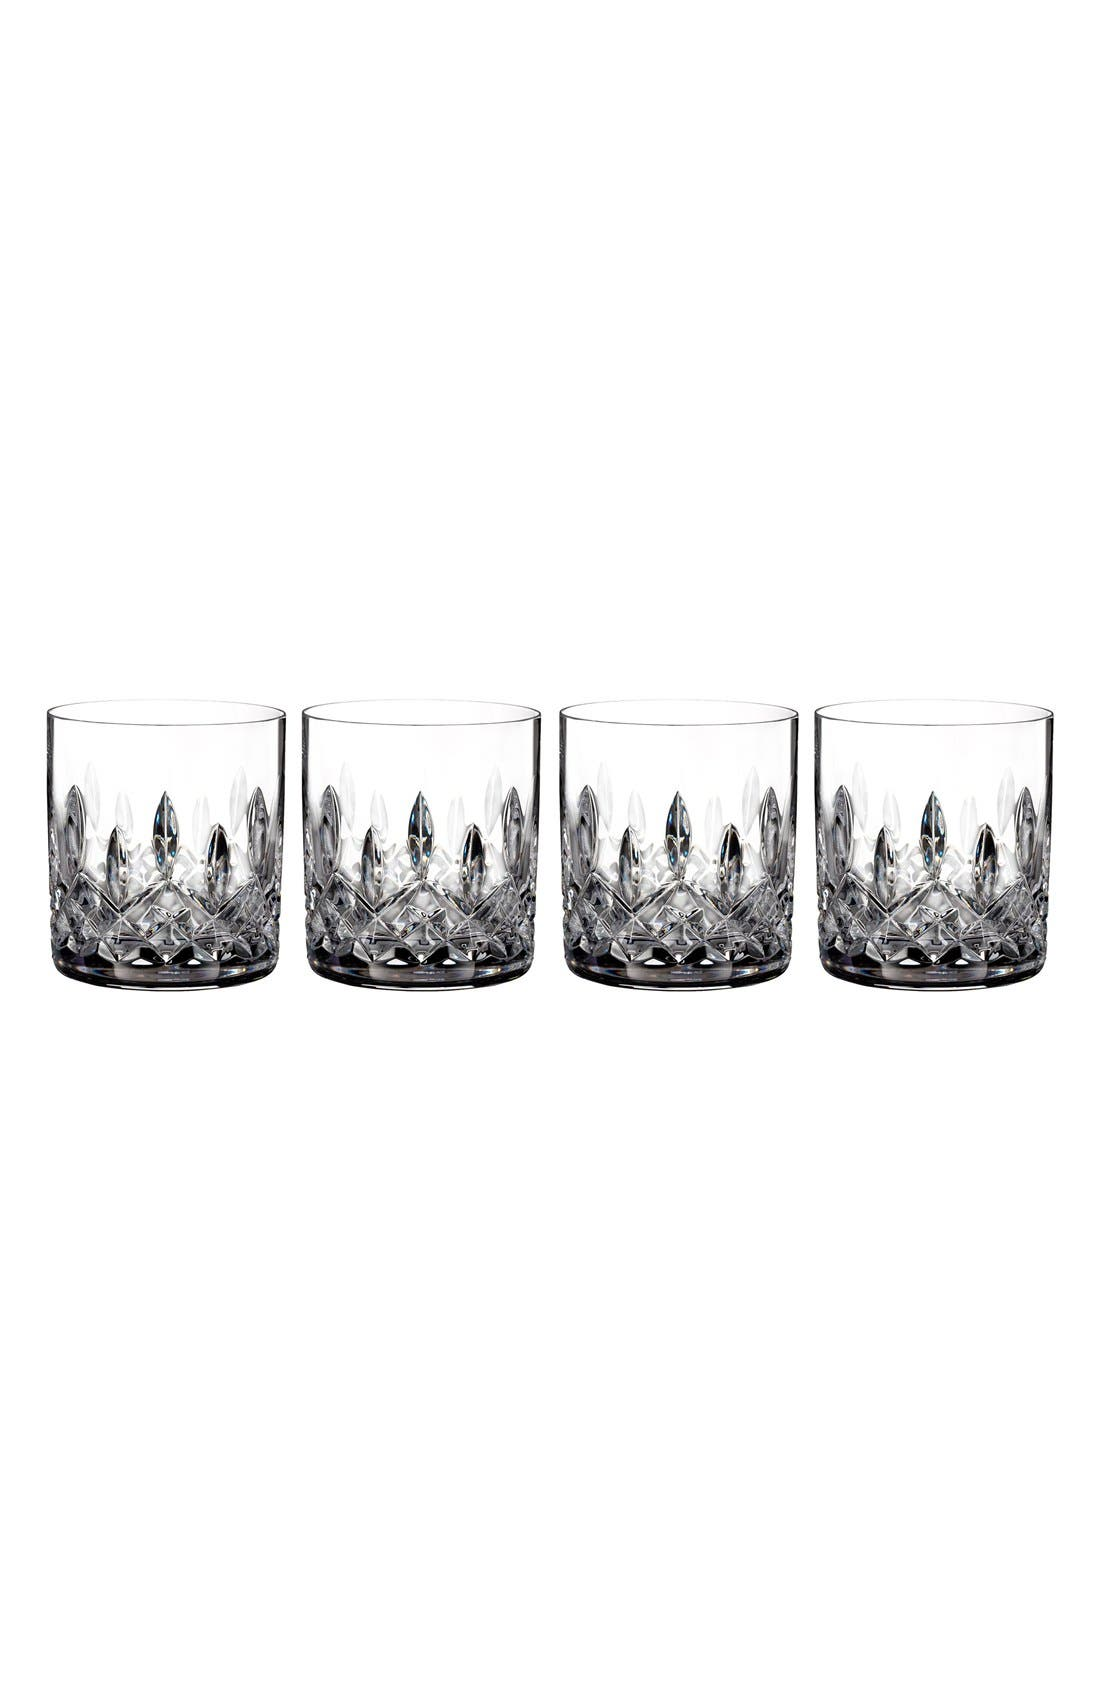 Waterford 'Lismore' Lead Crystal Straight Sided Tumblers (Set of 4)